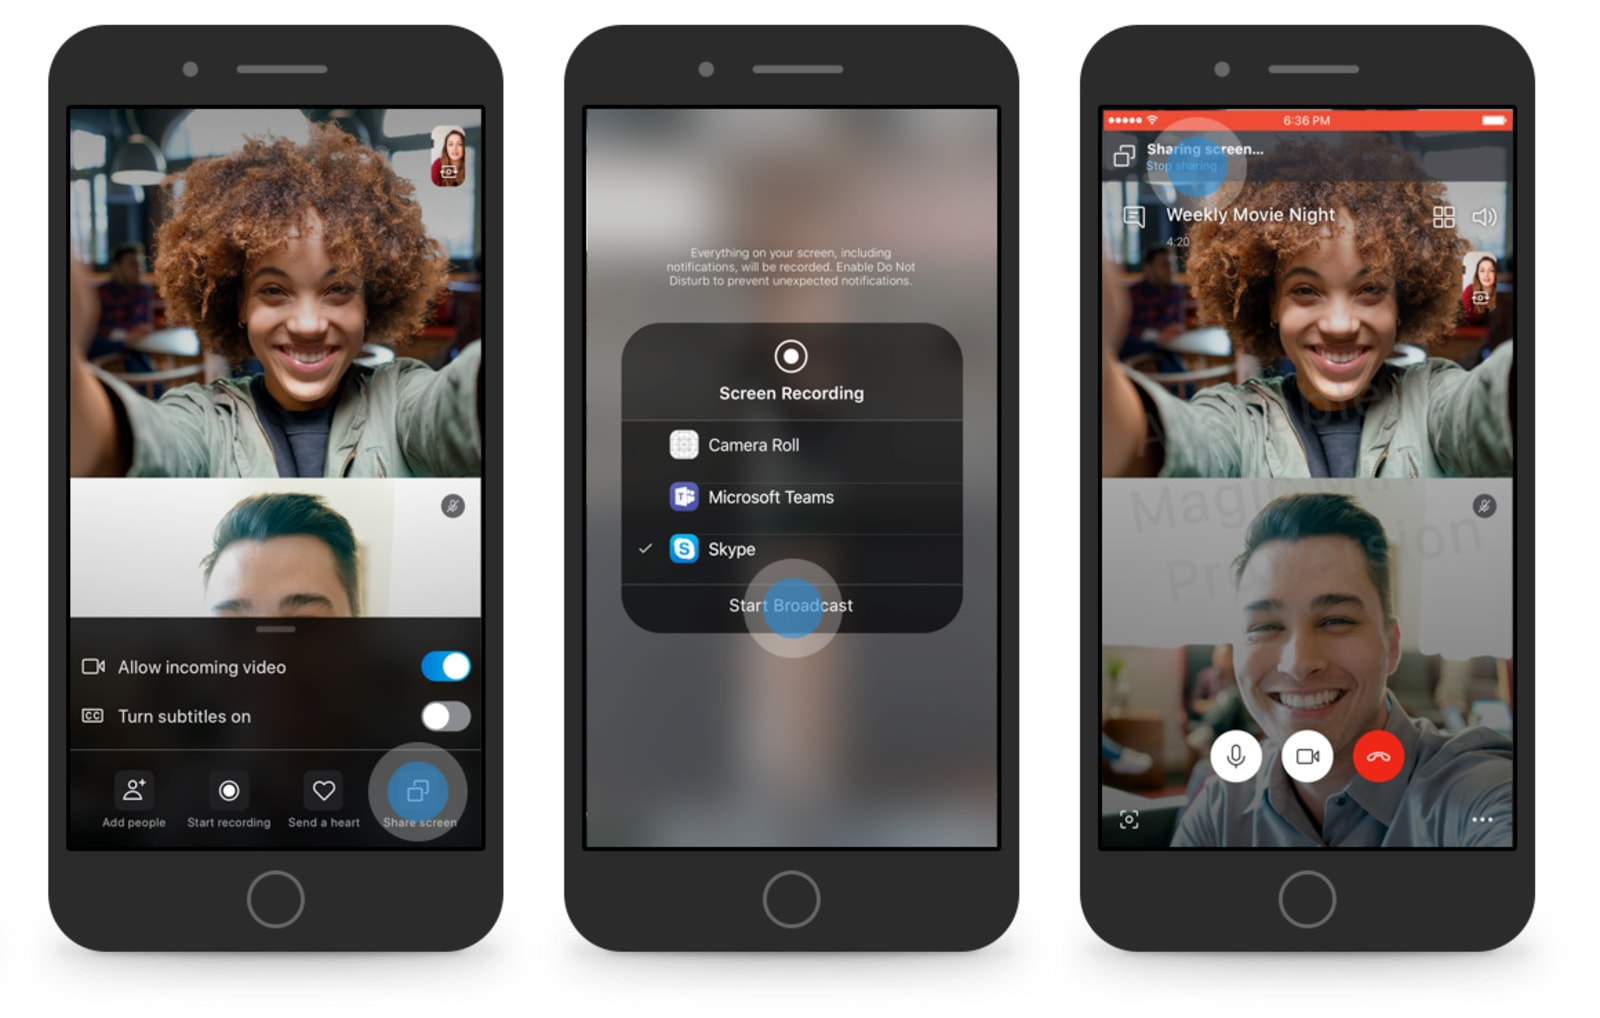 Skype adds screen sharing to its iOS and Android apps - Sound Tech